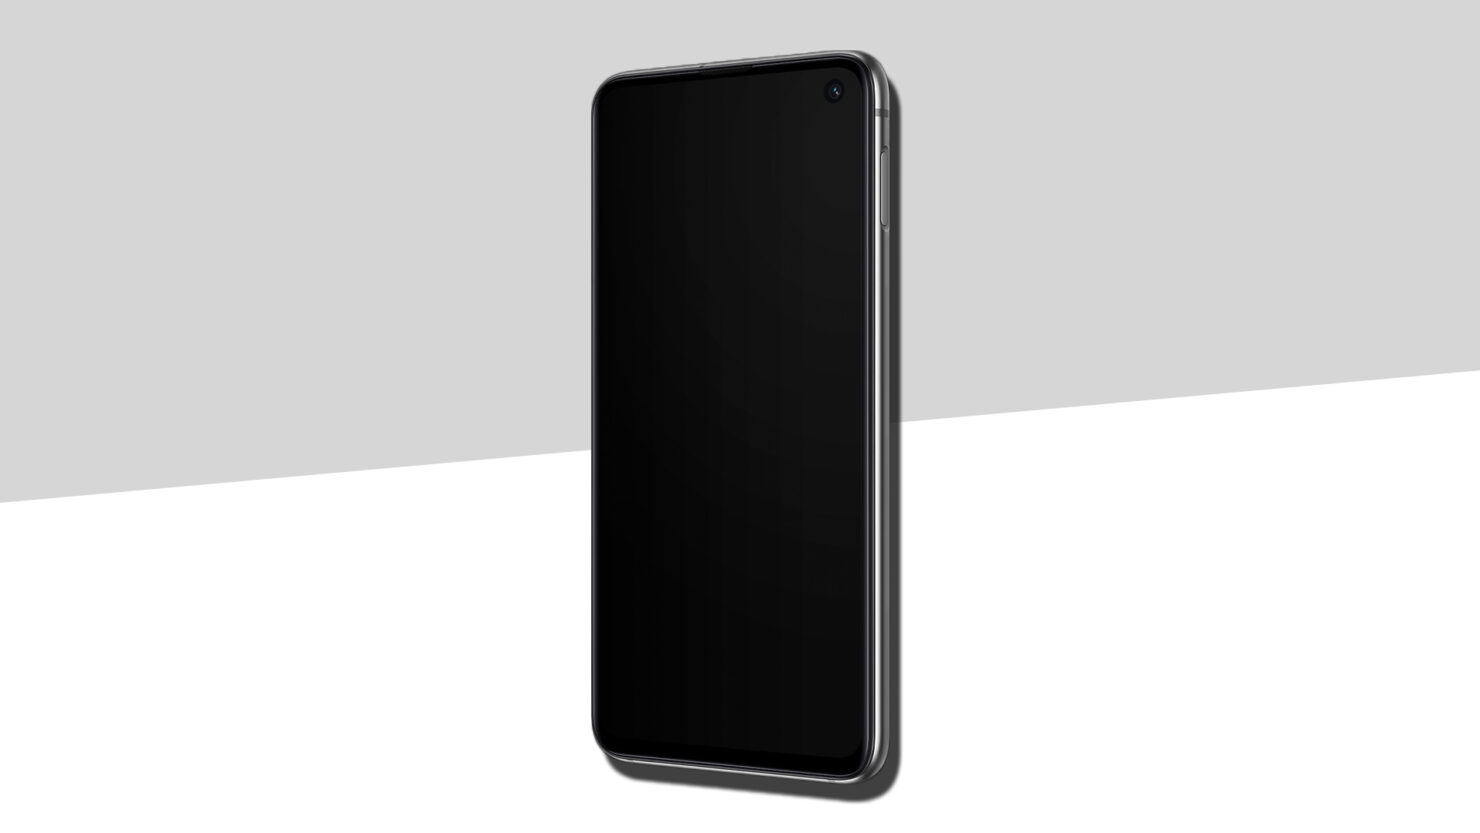 Galaxy S11 Display Could Use a Taller Display With Slimmer Bezels